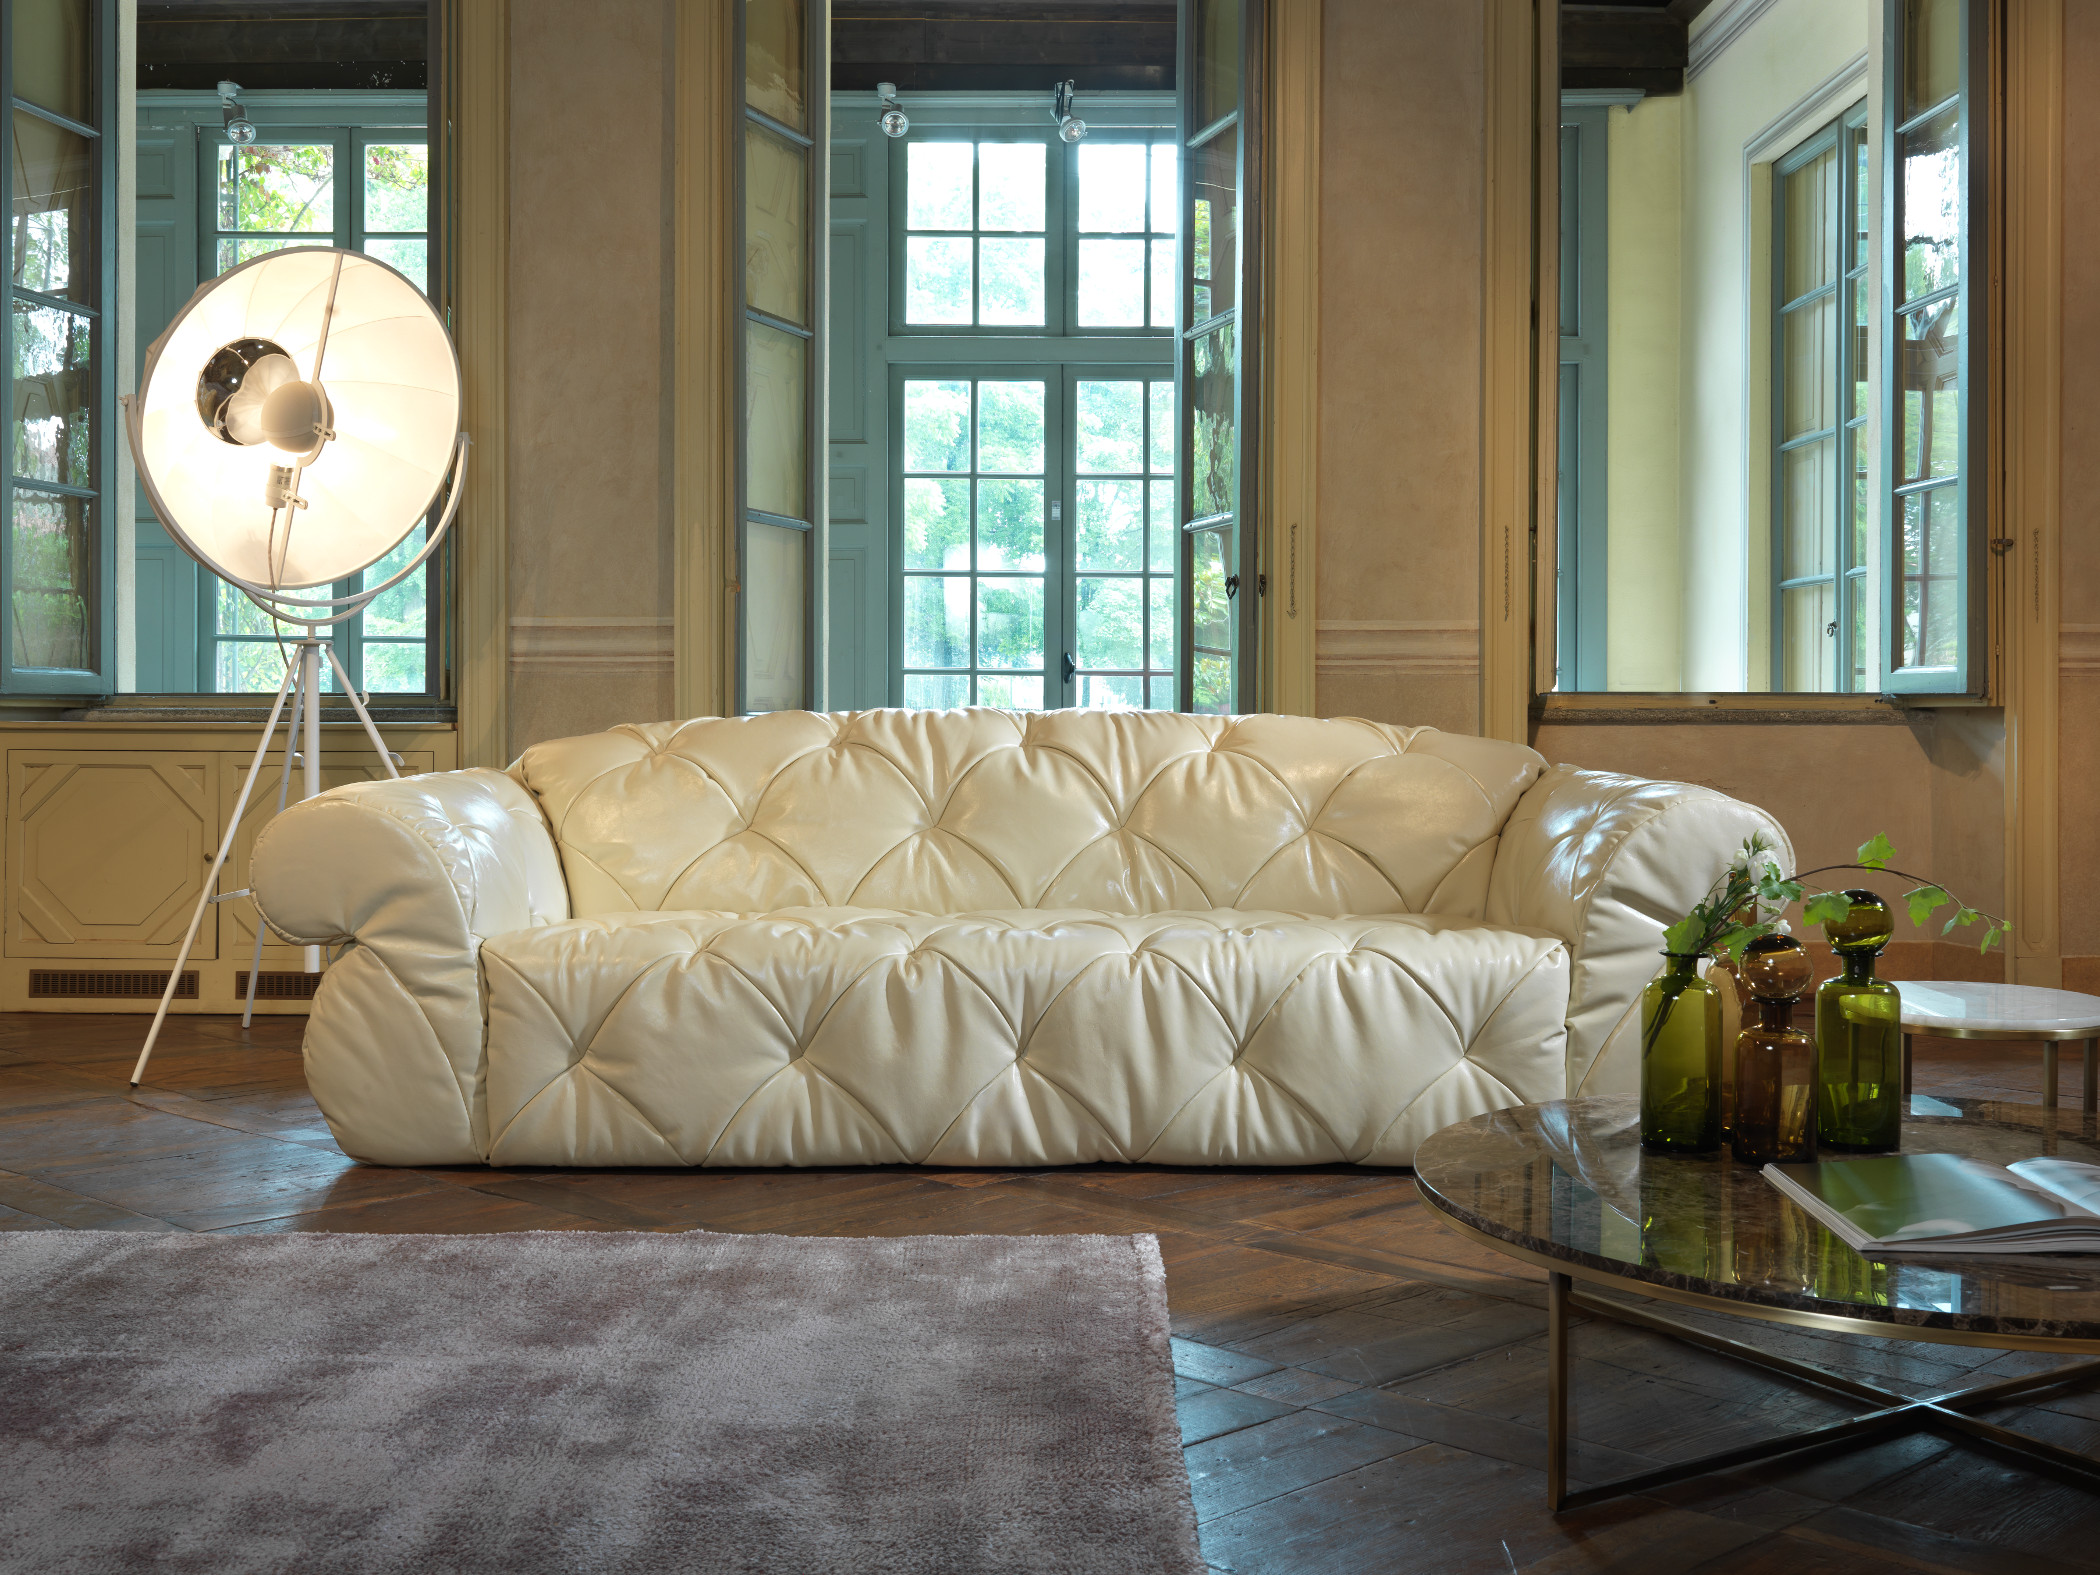 Linear sofa Luxury, Marelli Outlet